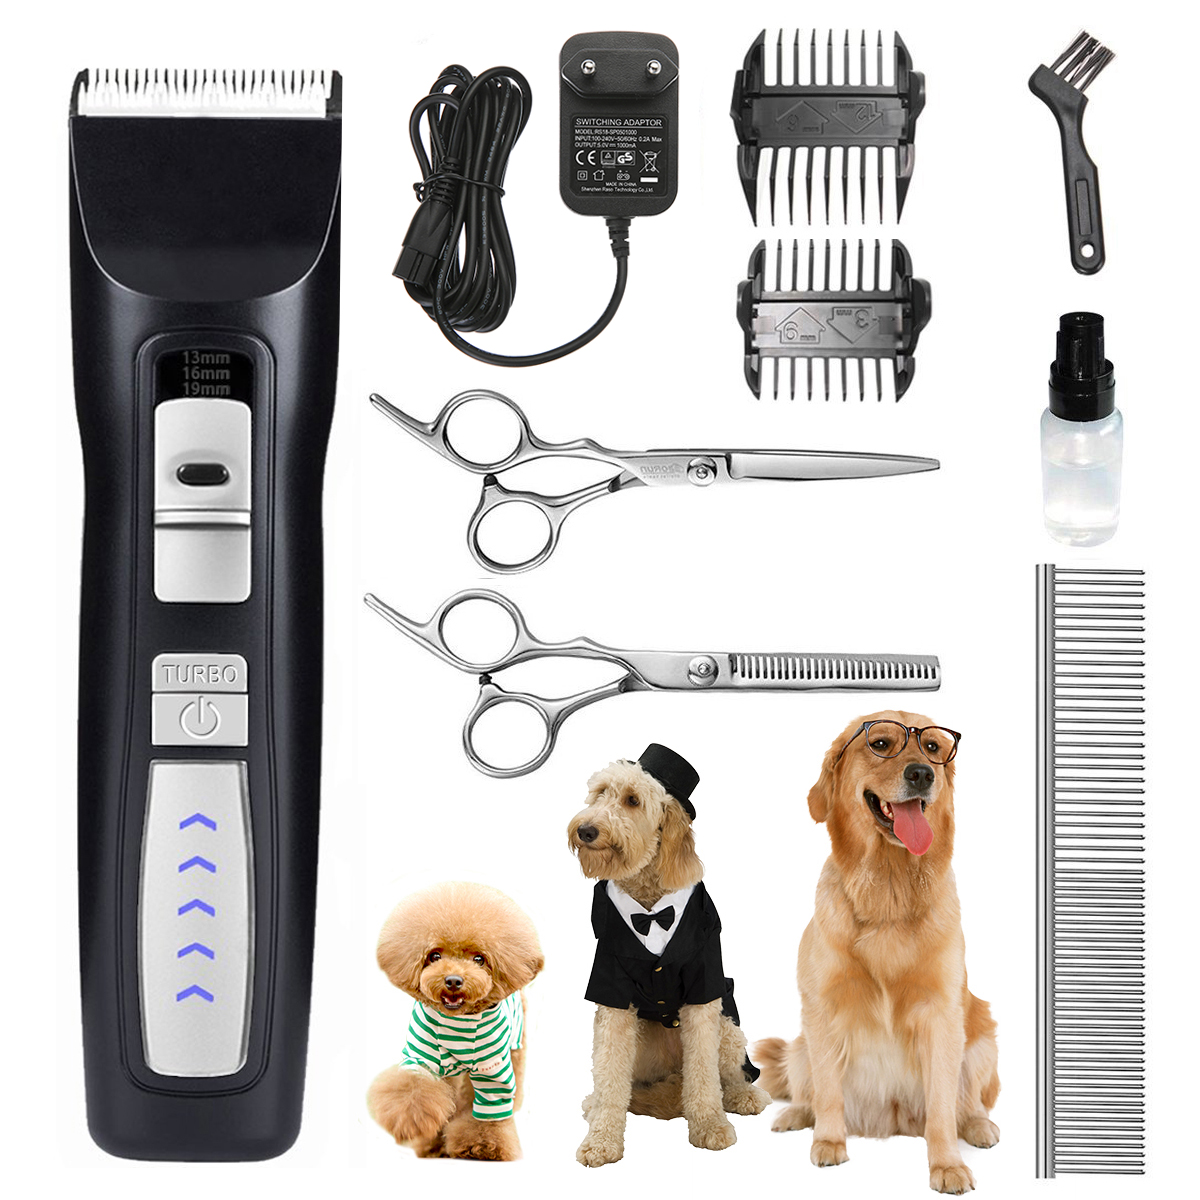 Dog Pet Grooming Clippers for Thick fur,Focuspet Low Noise Professional Dog Grooming Clippers Rechargeable Cordless Pet Grooming Clippers Tool Trimmer for Small to Large Dogs Cat